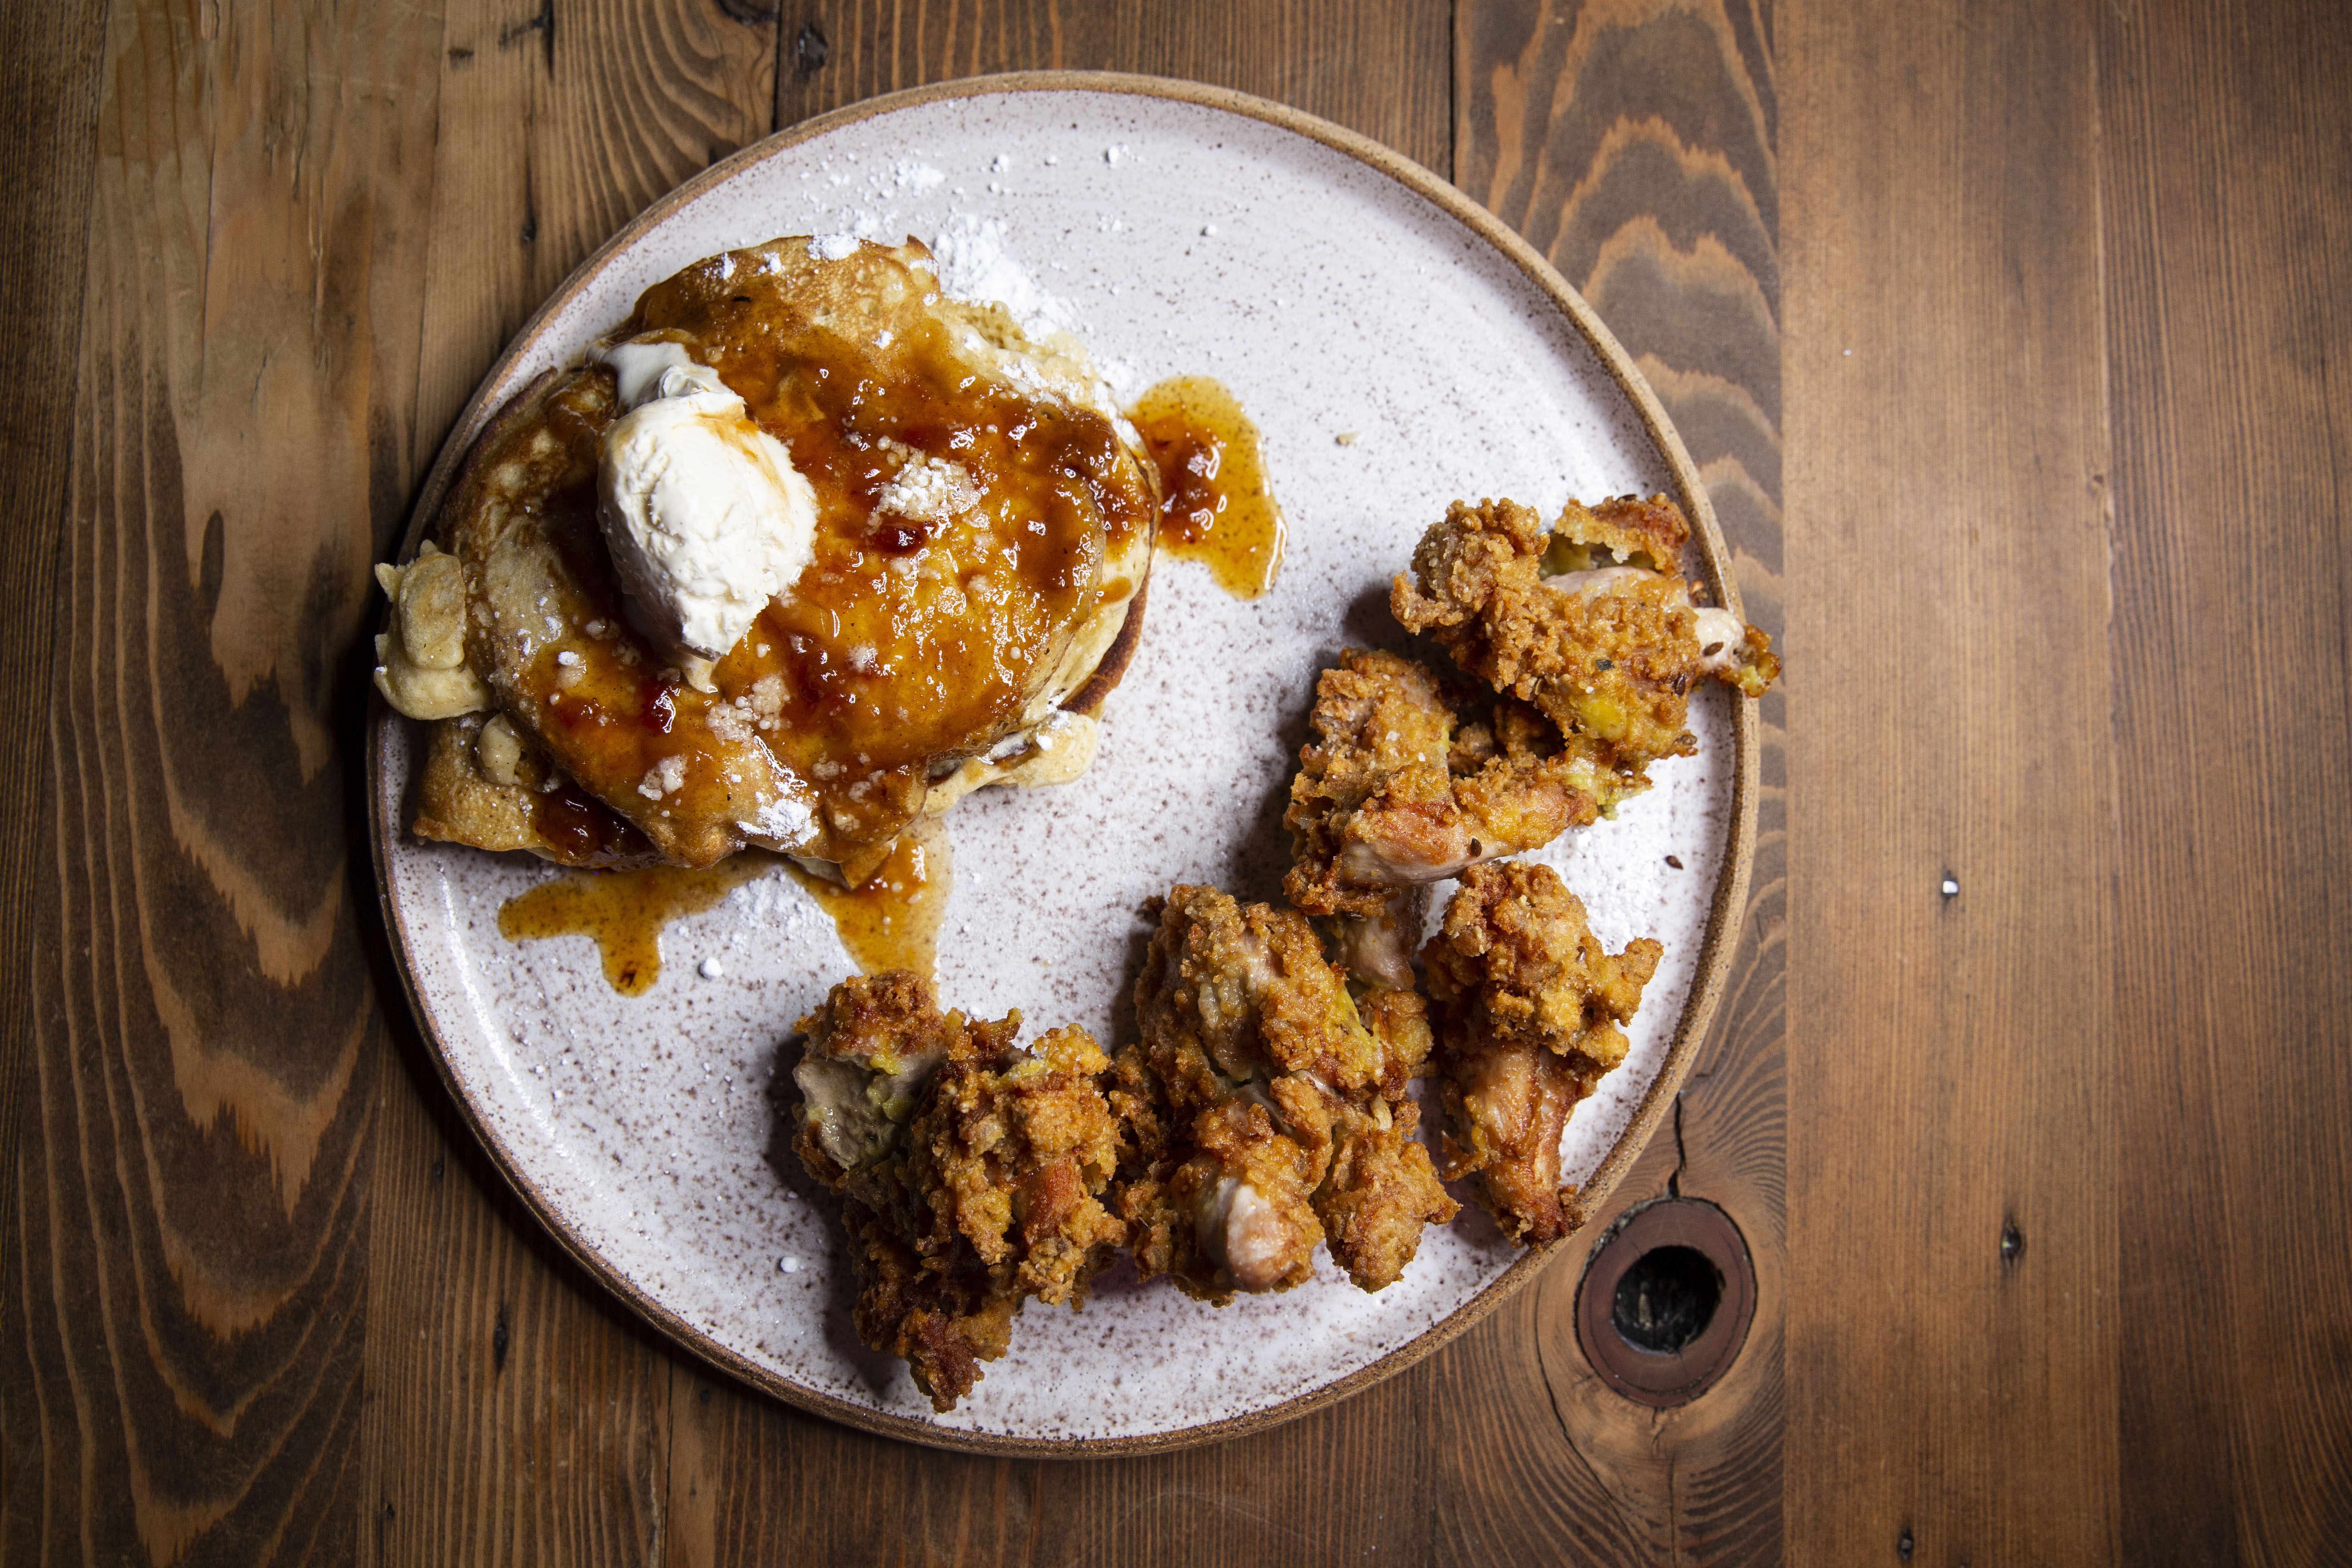 A plate with a stack of hoecakes and fried chicken, on a wooden table.